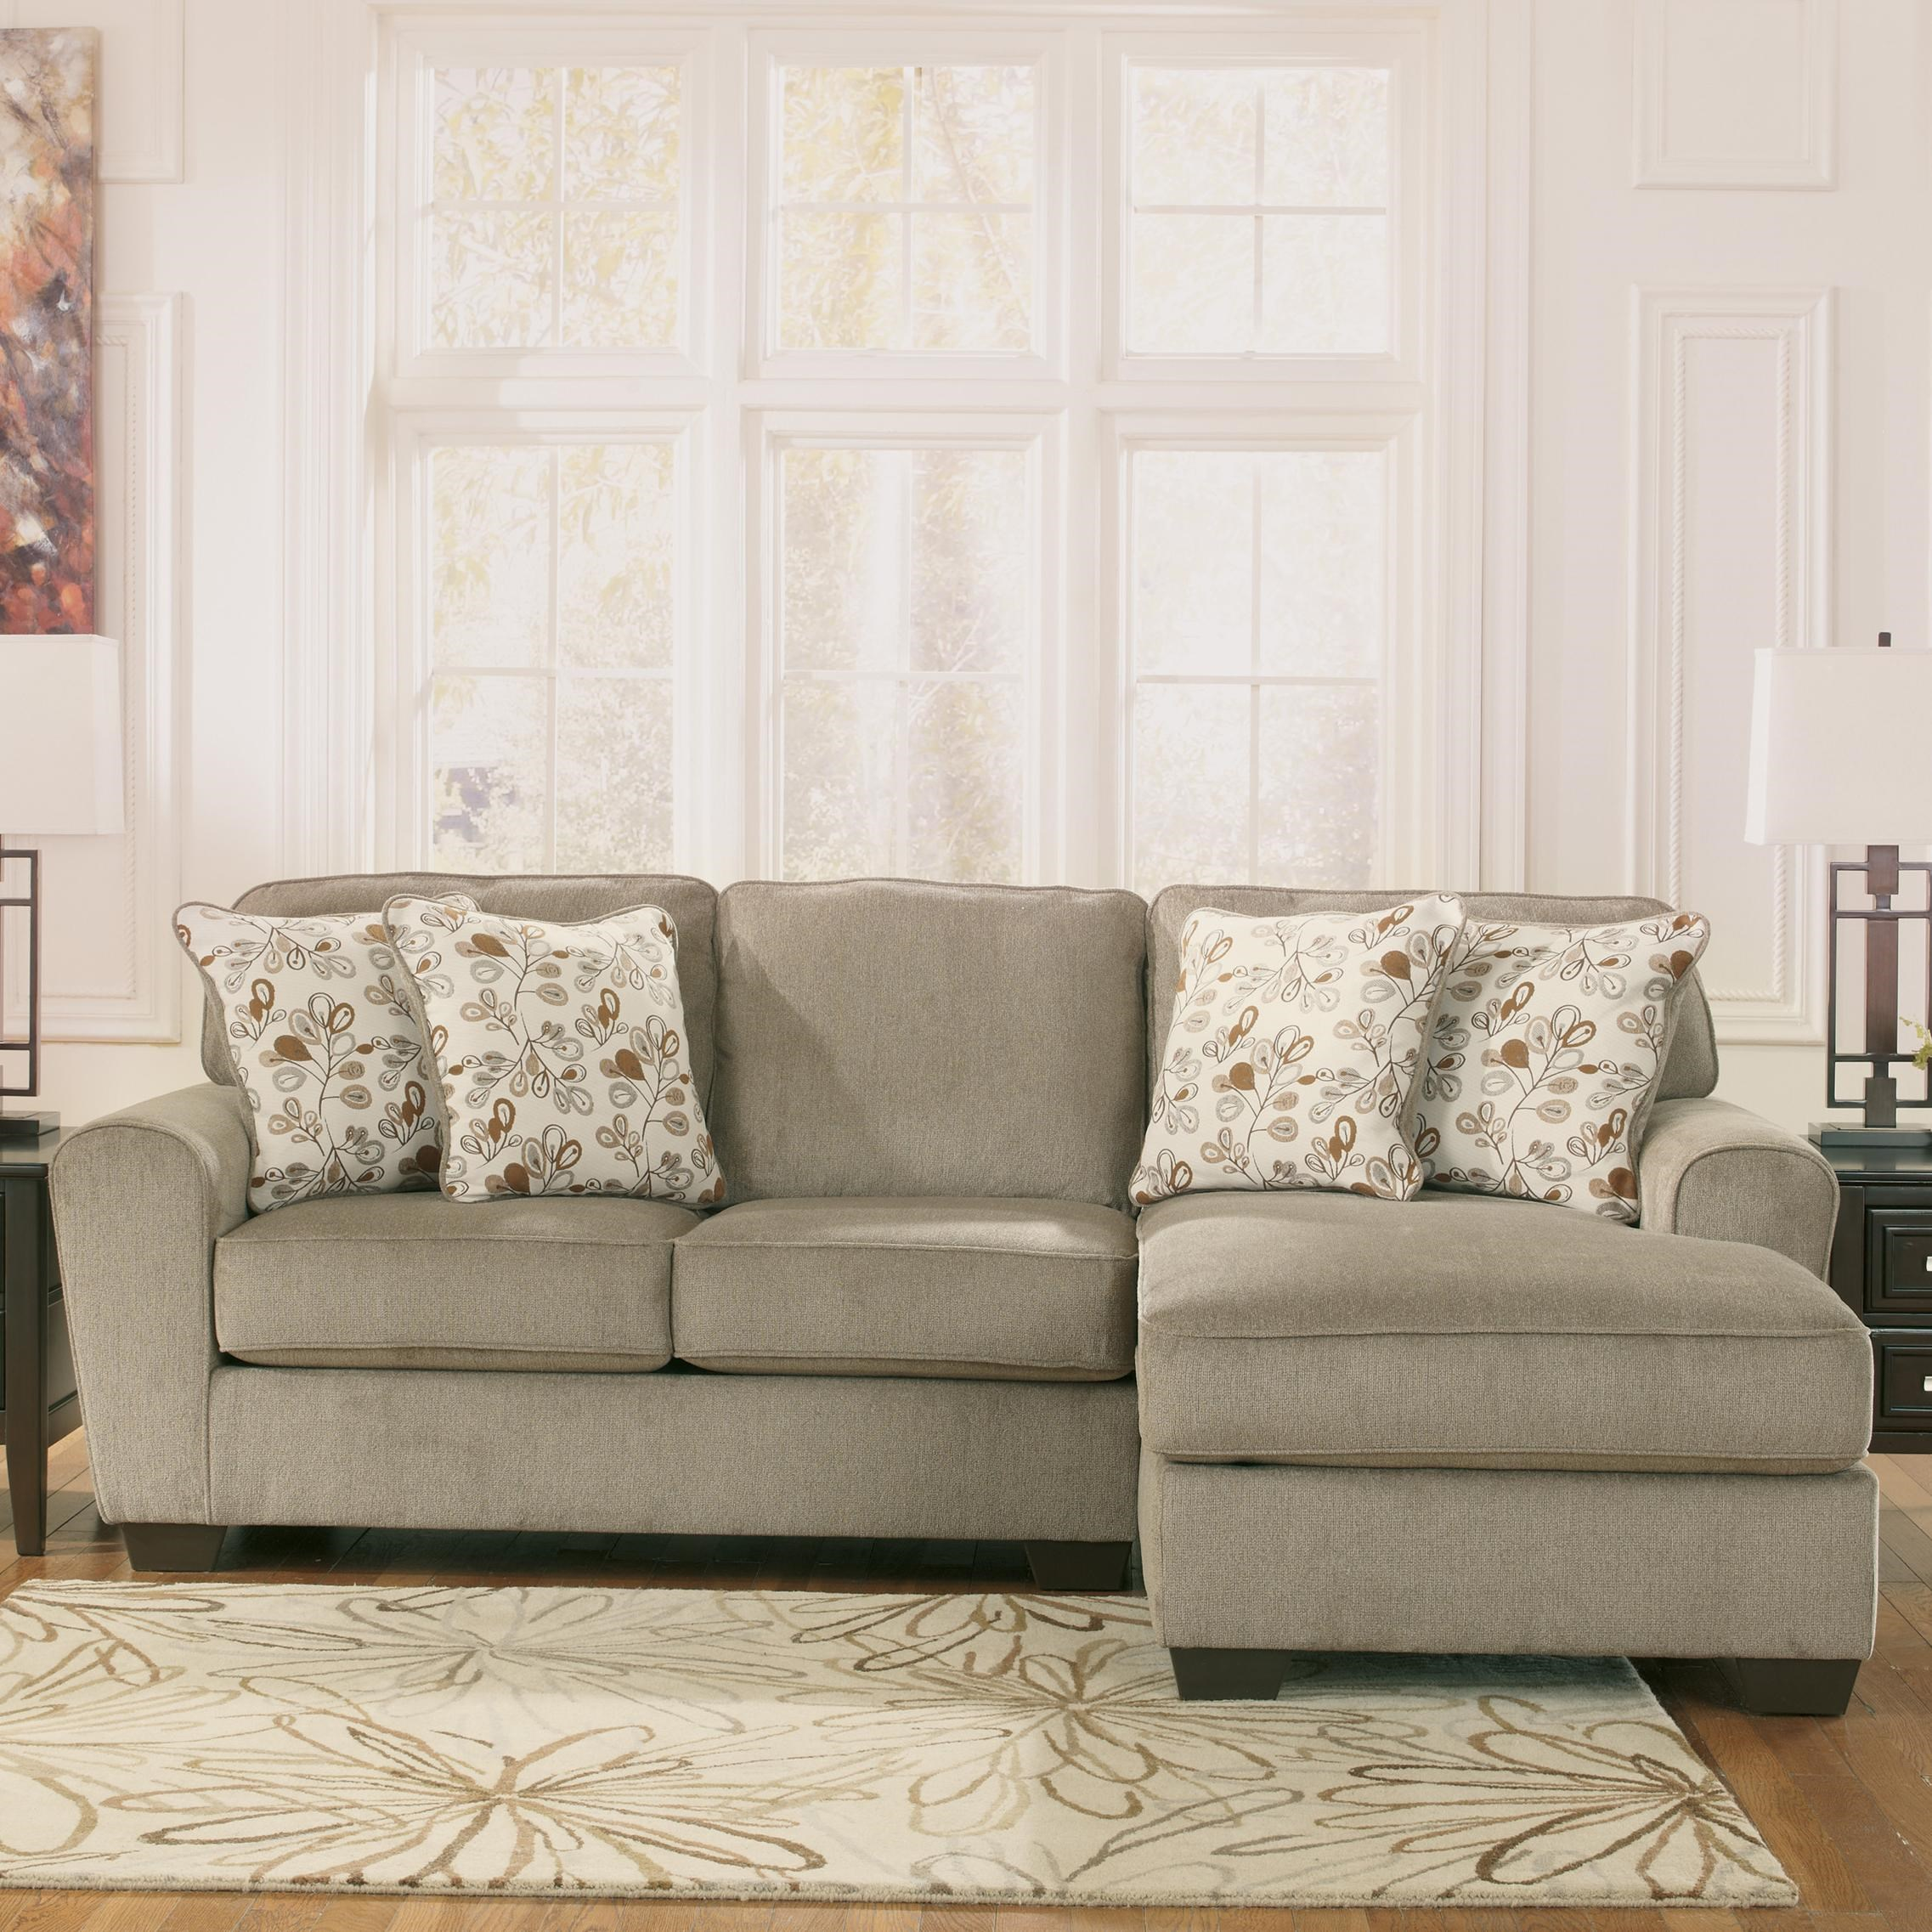 ashley furniture patola park patina 2 piece sectional with right chaise household furniture sectional sofas